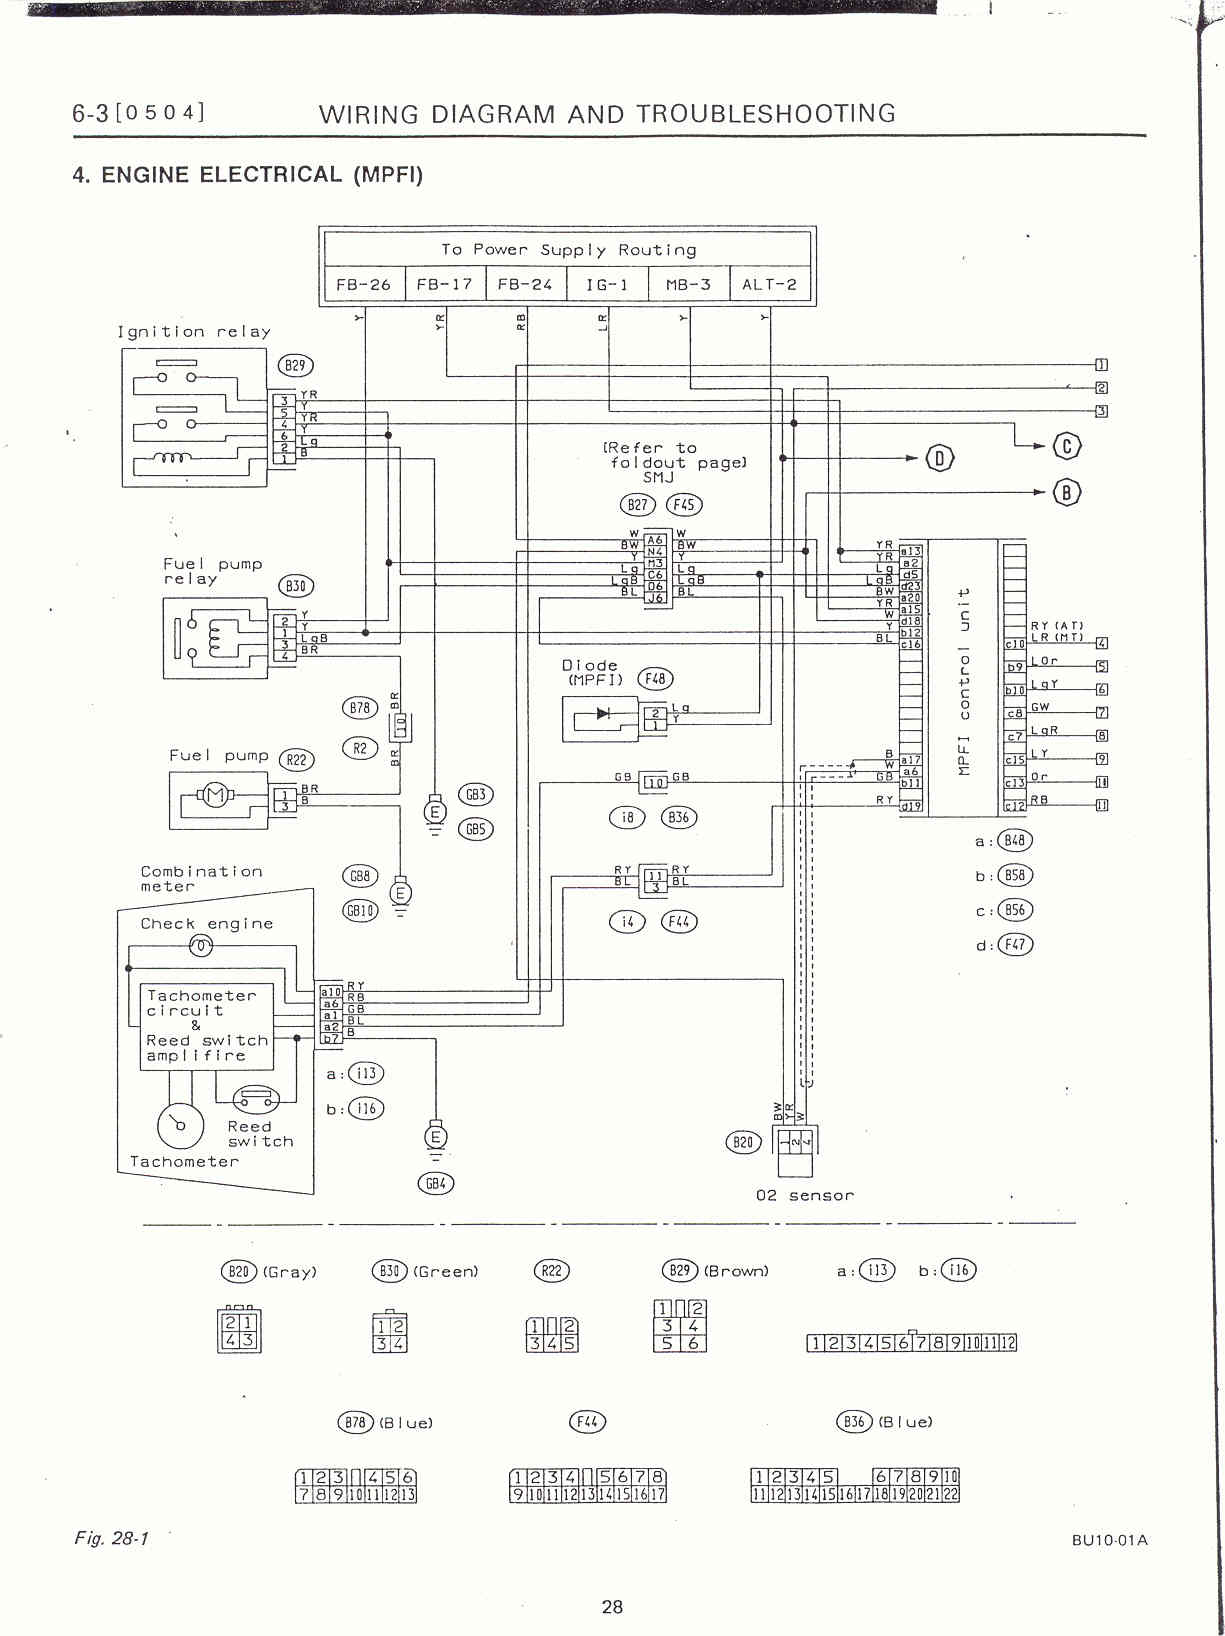 Subaru Key Switch Wiring Diagram Libraries K2v W Jetta Engine Surrealmirage Legacy Swap Electrical Info U0026 Notesengine Page 1